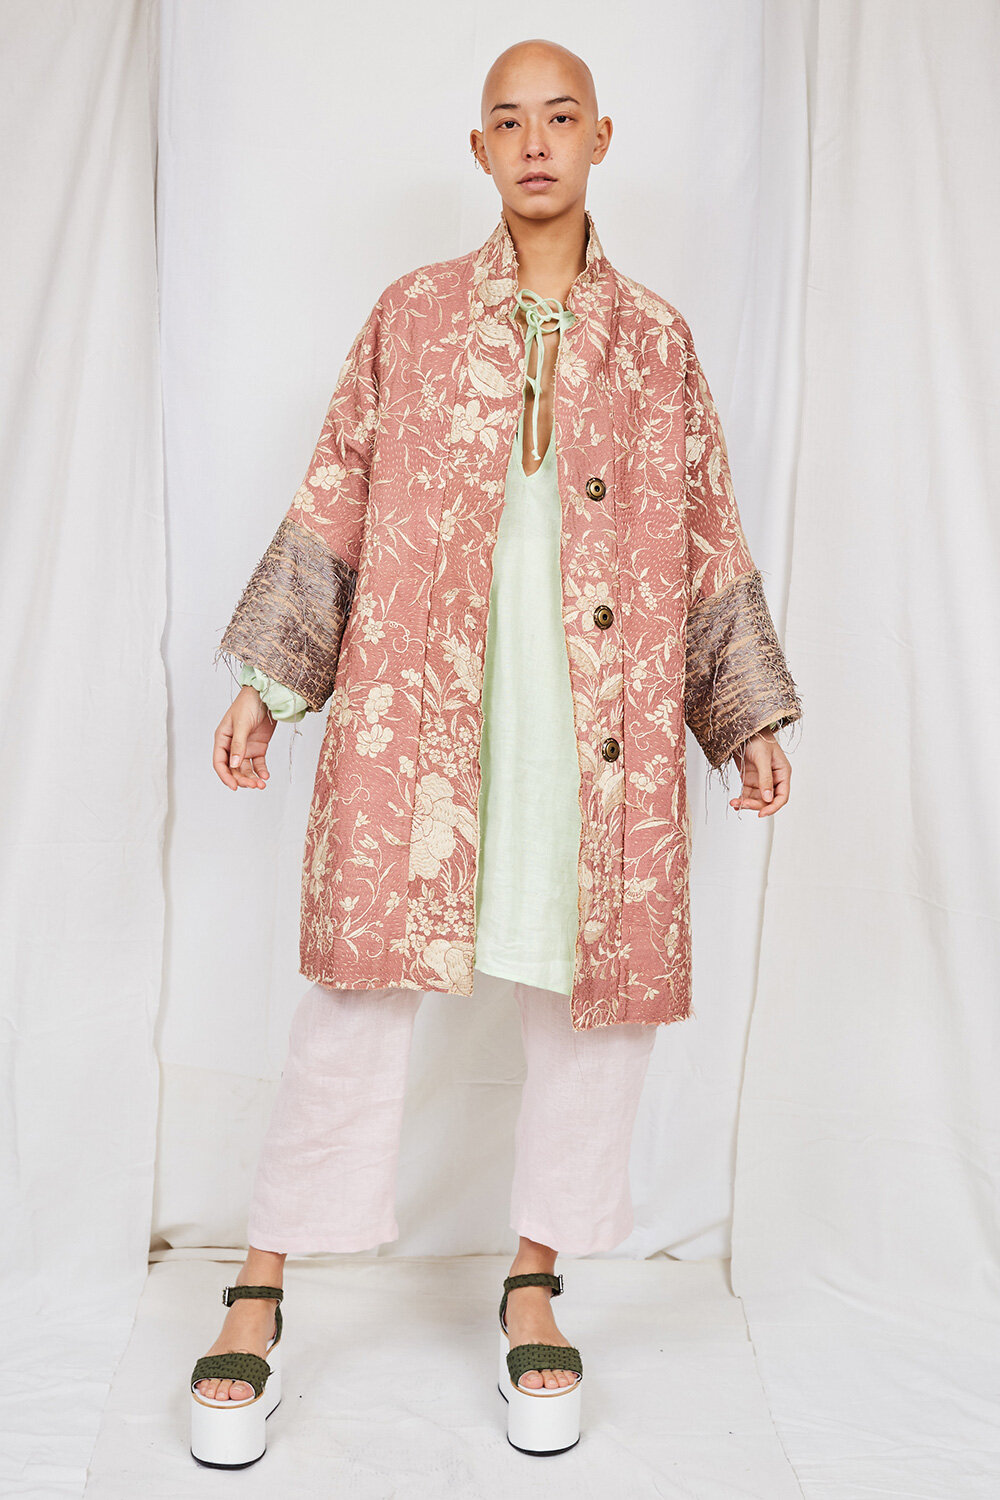 By Walid Womenswear Embroidered Silk Coat in PinkSS20